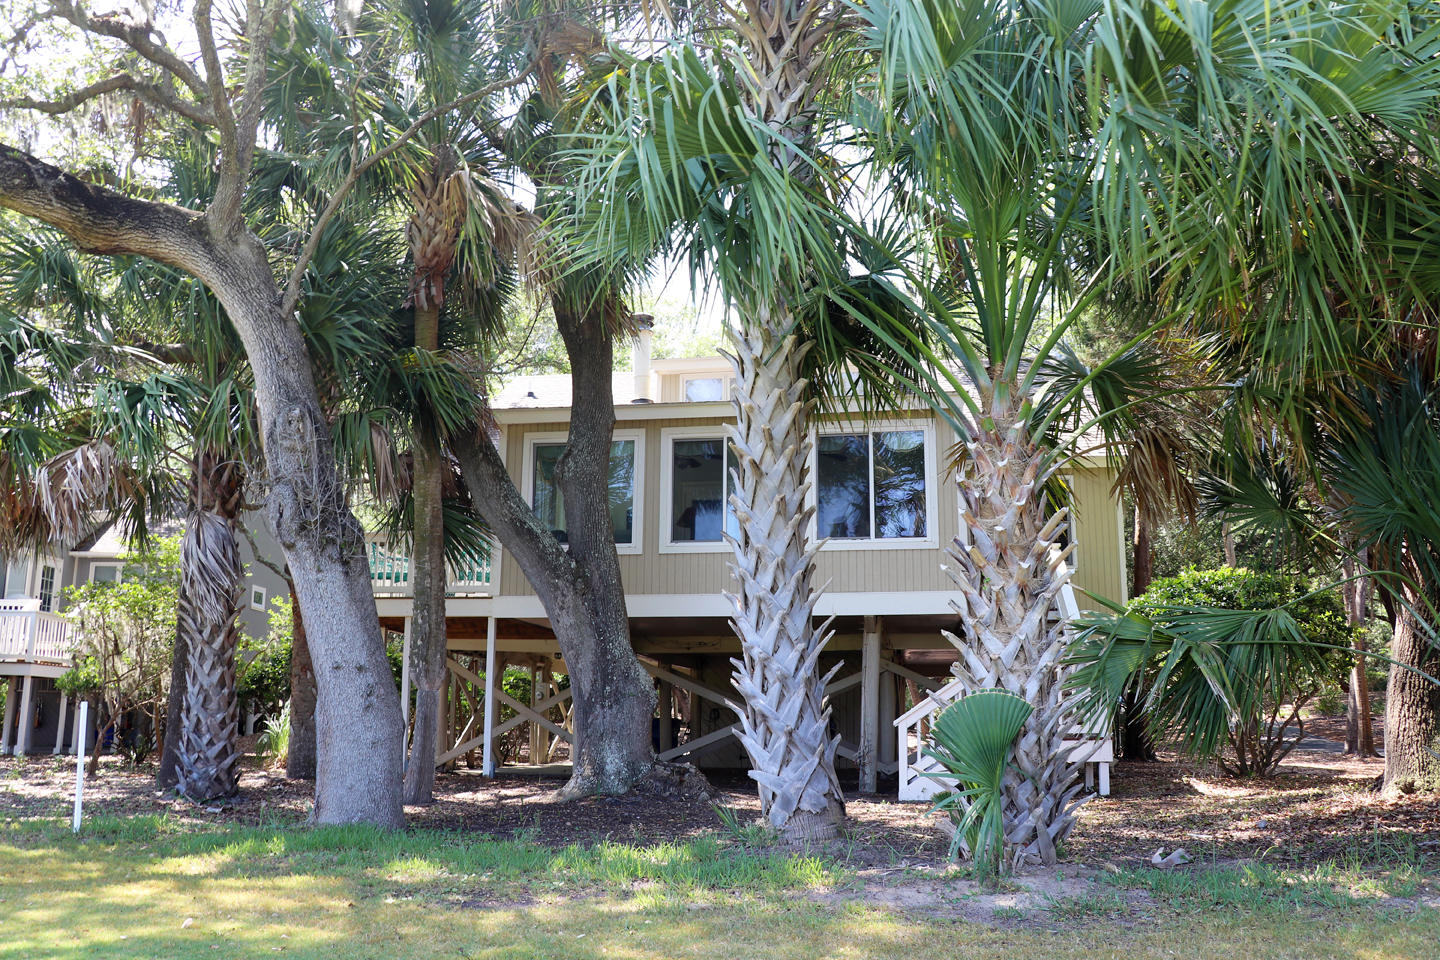 Tarpon Pond Cottages Homes For Sale - 546 Cobby Creek, Seabrook Island, SC - 14